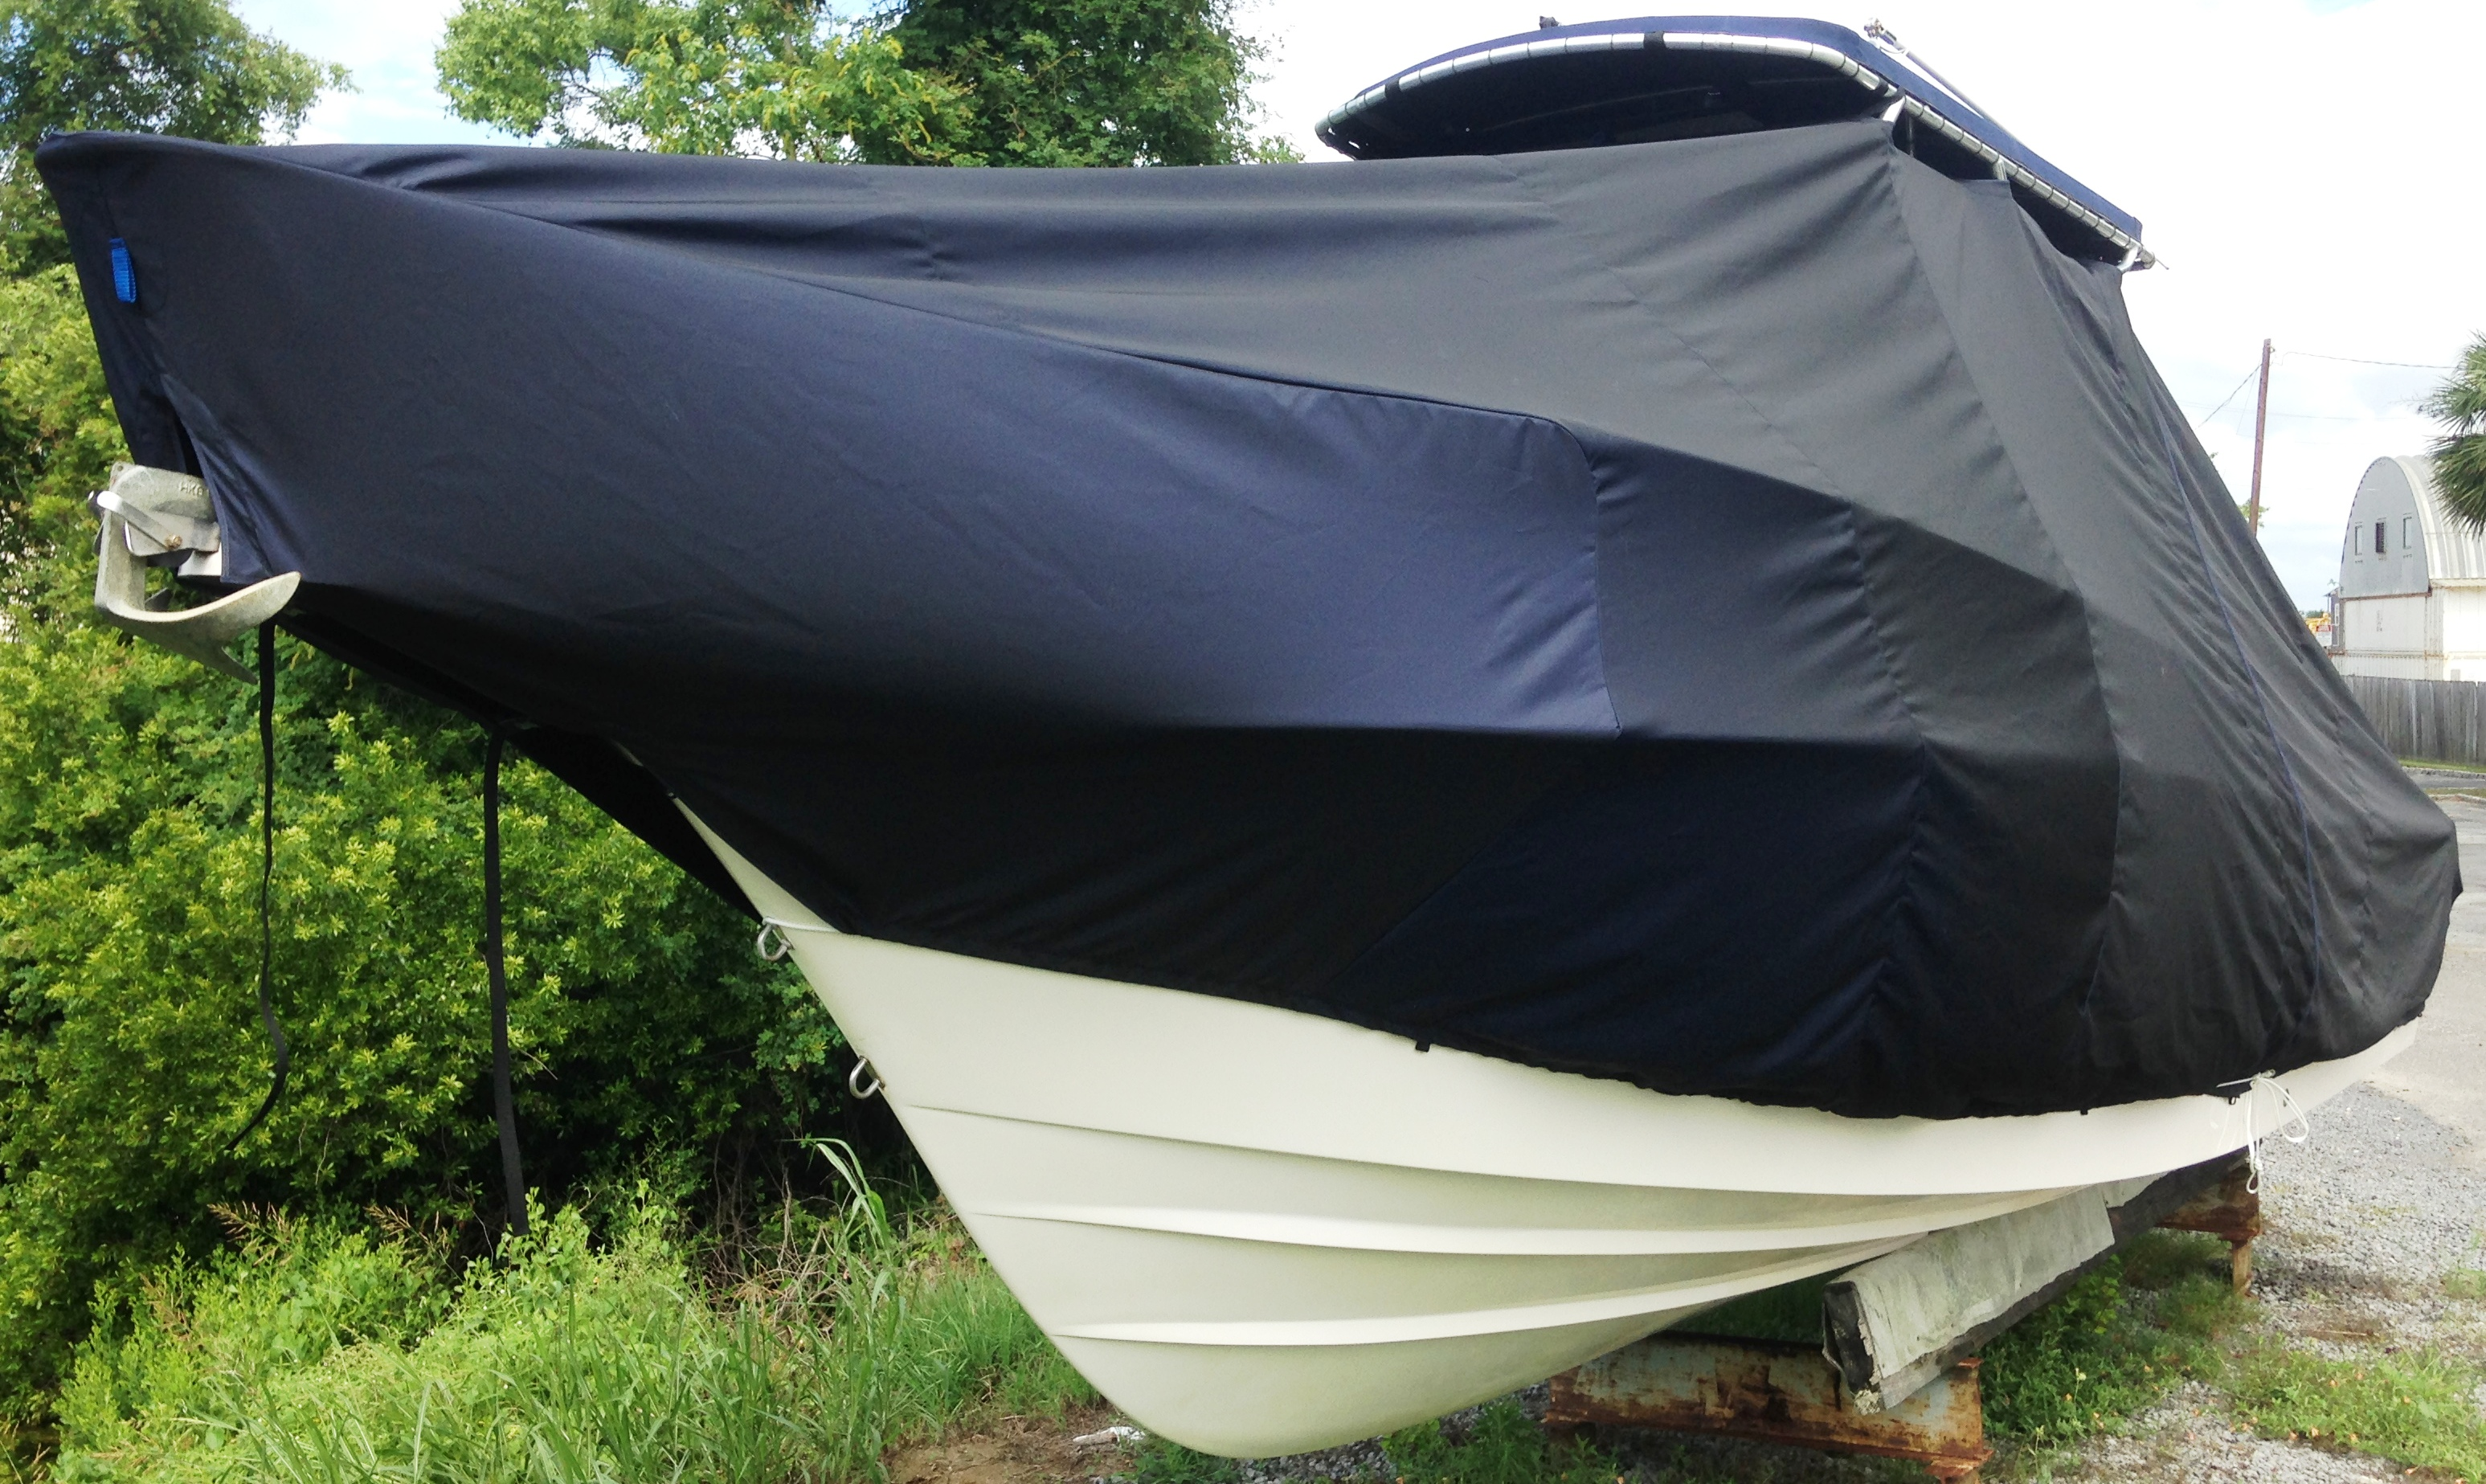 Grady White Islander 268, 19xx, TTopCovers™ T-Top boat cover, port front